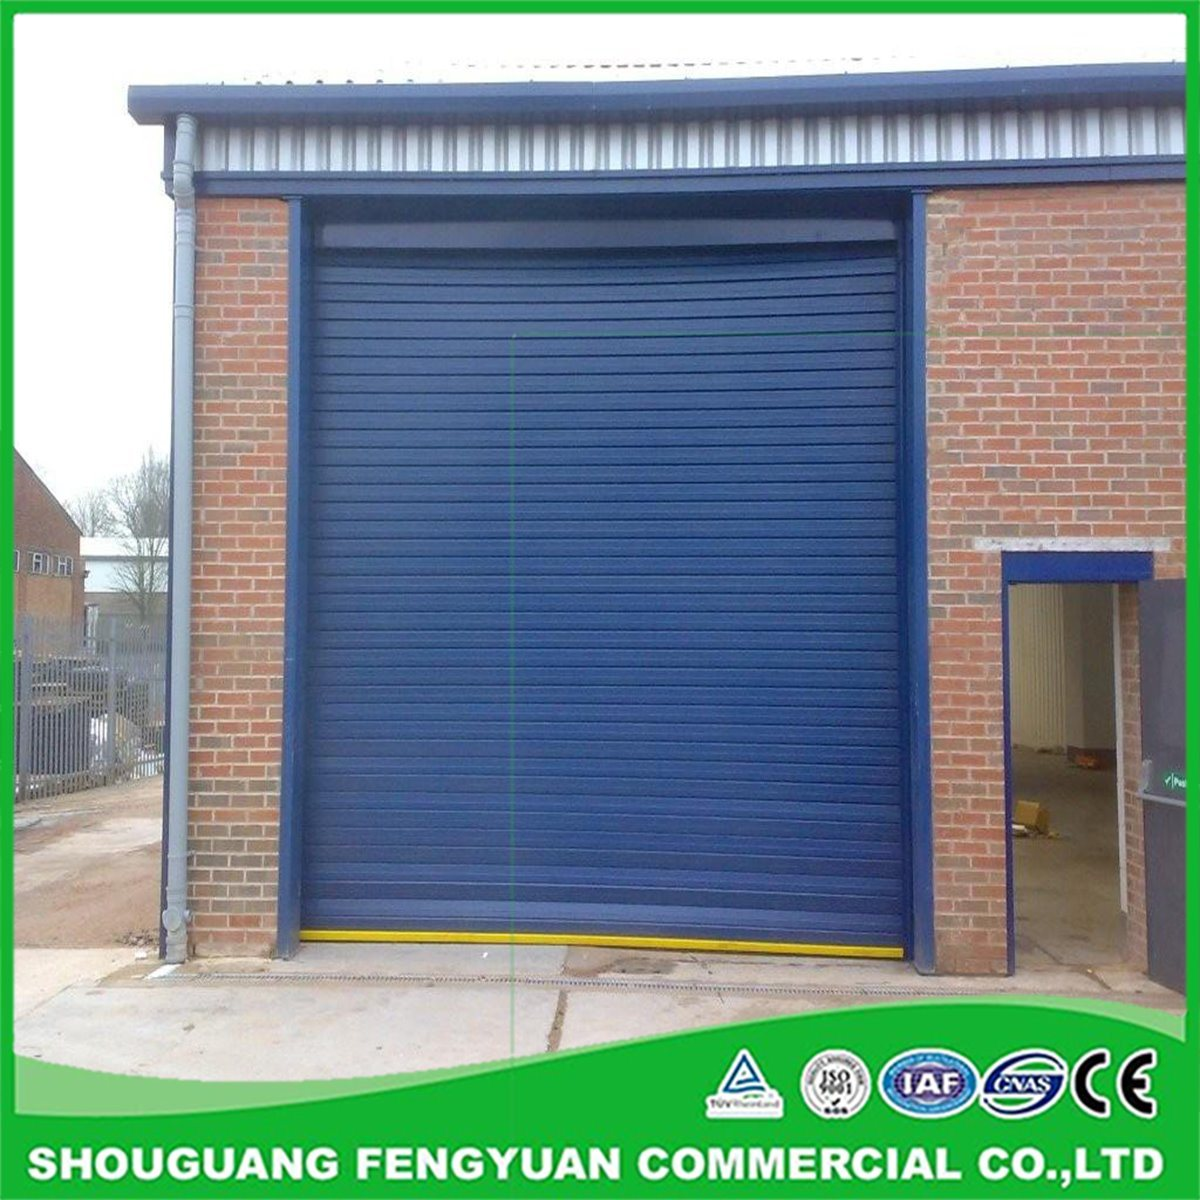 Hot Item Roller Shutters With Many Colors Protect Doors And Windows